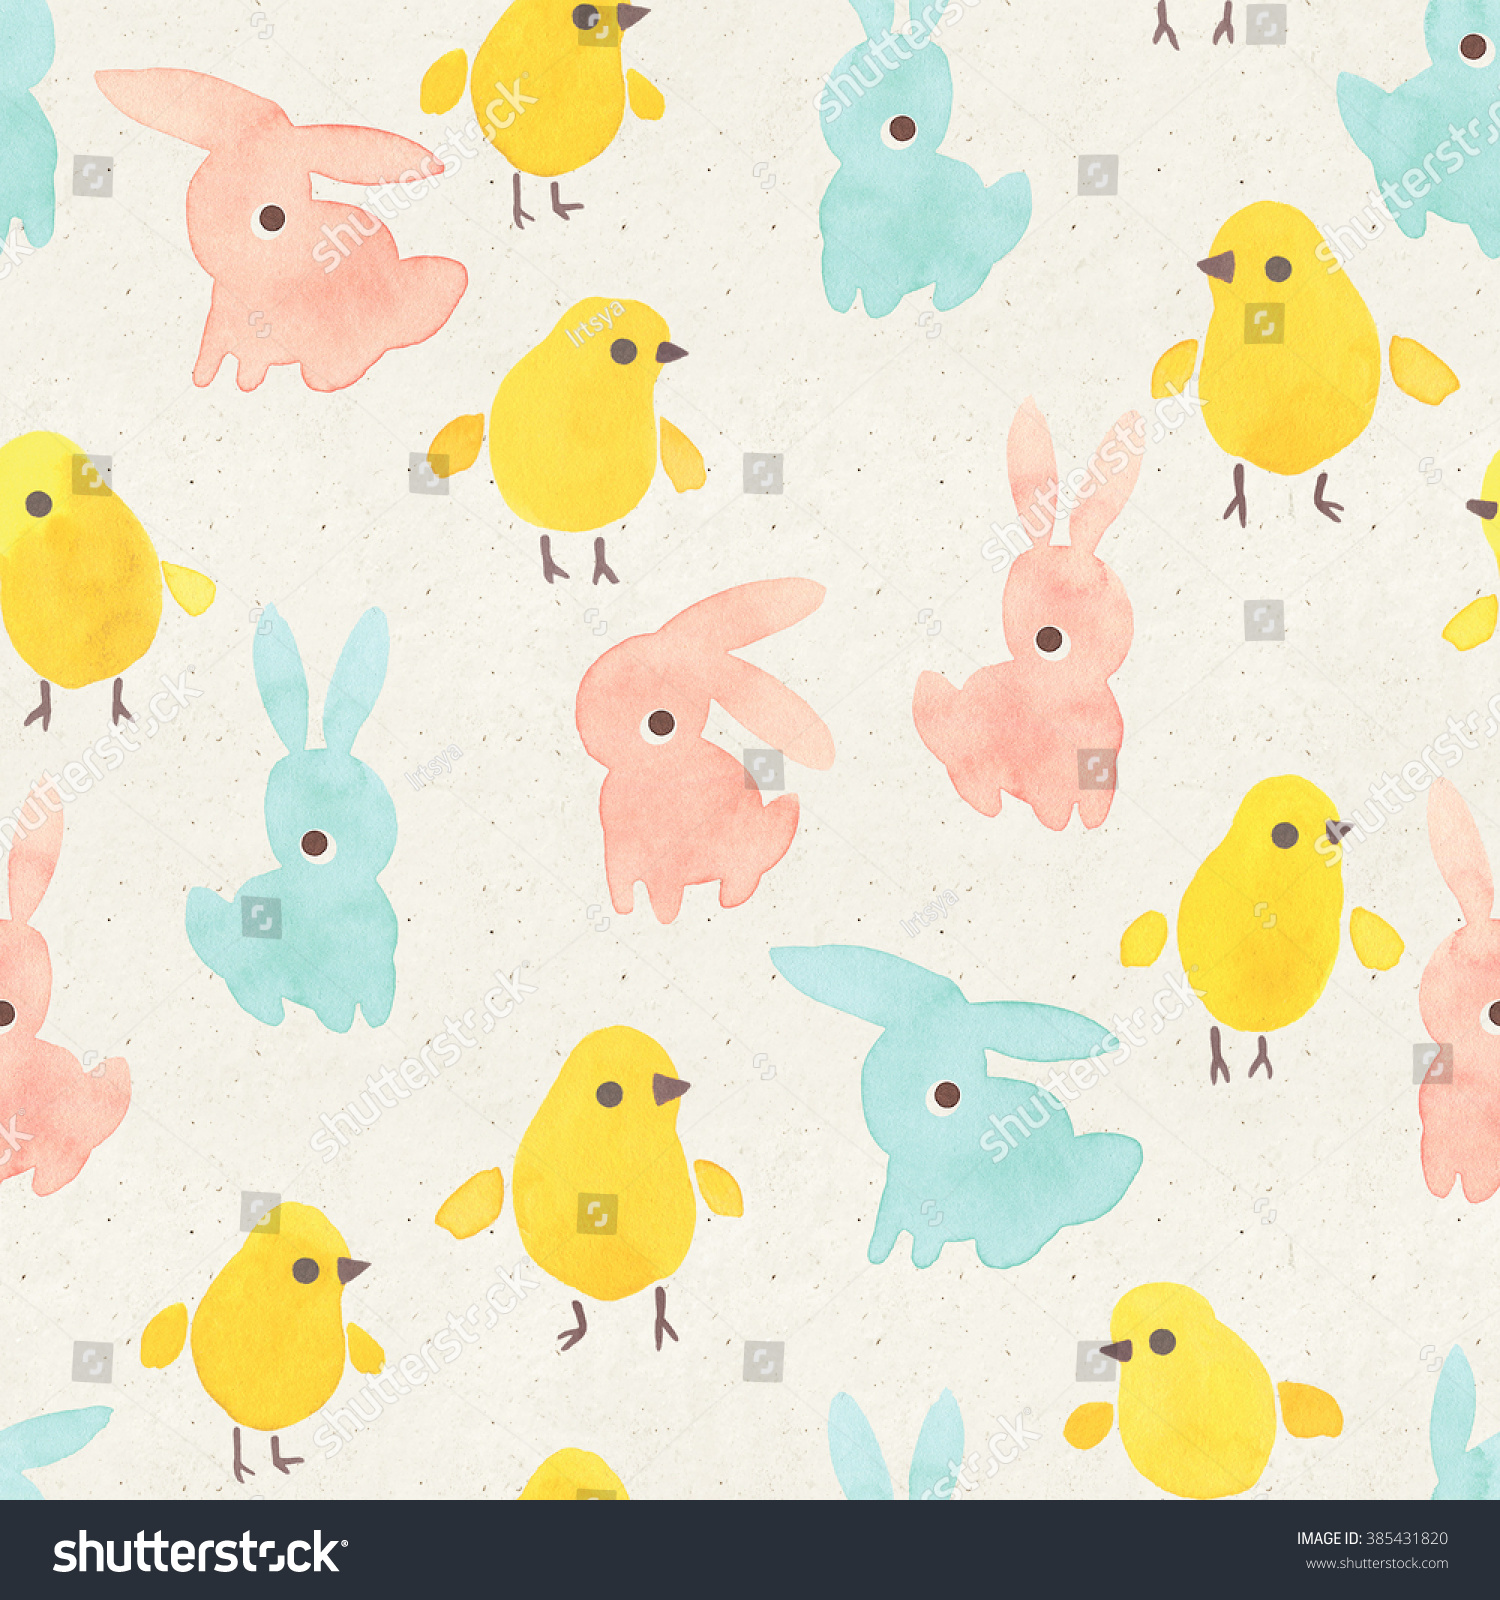 seamless watercolor pattern on paper texture stock illustration